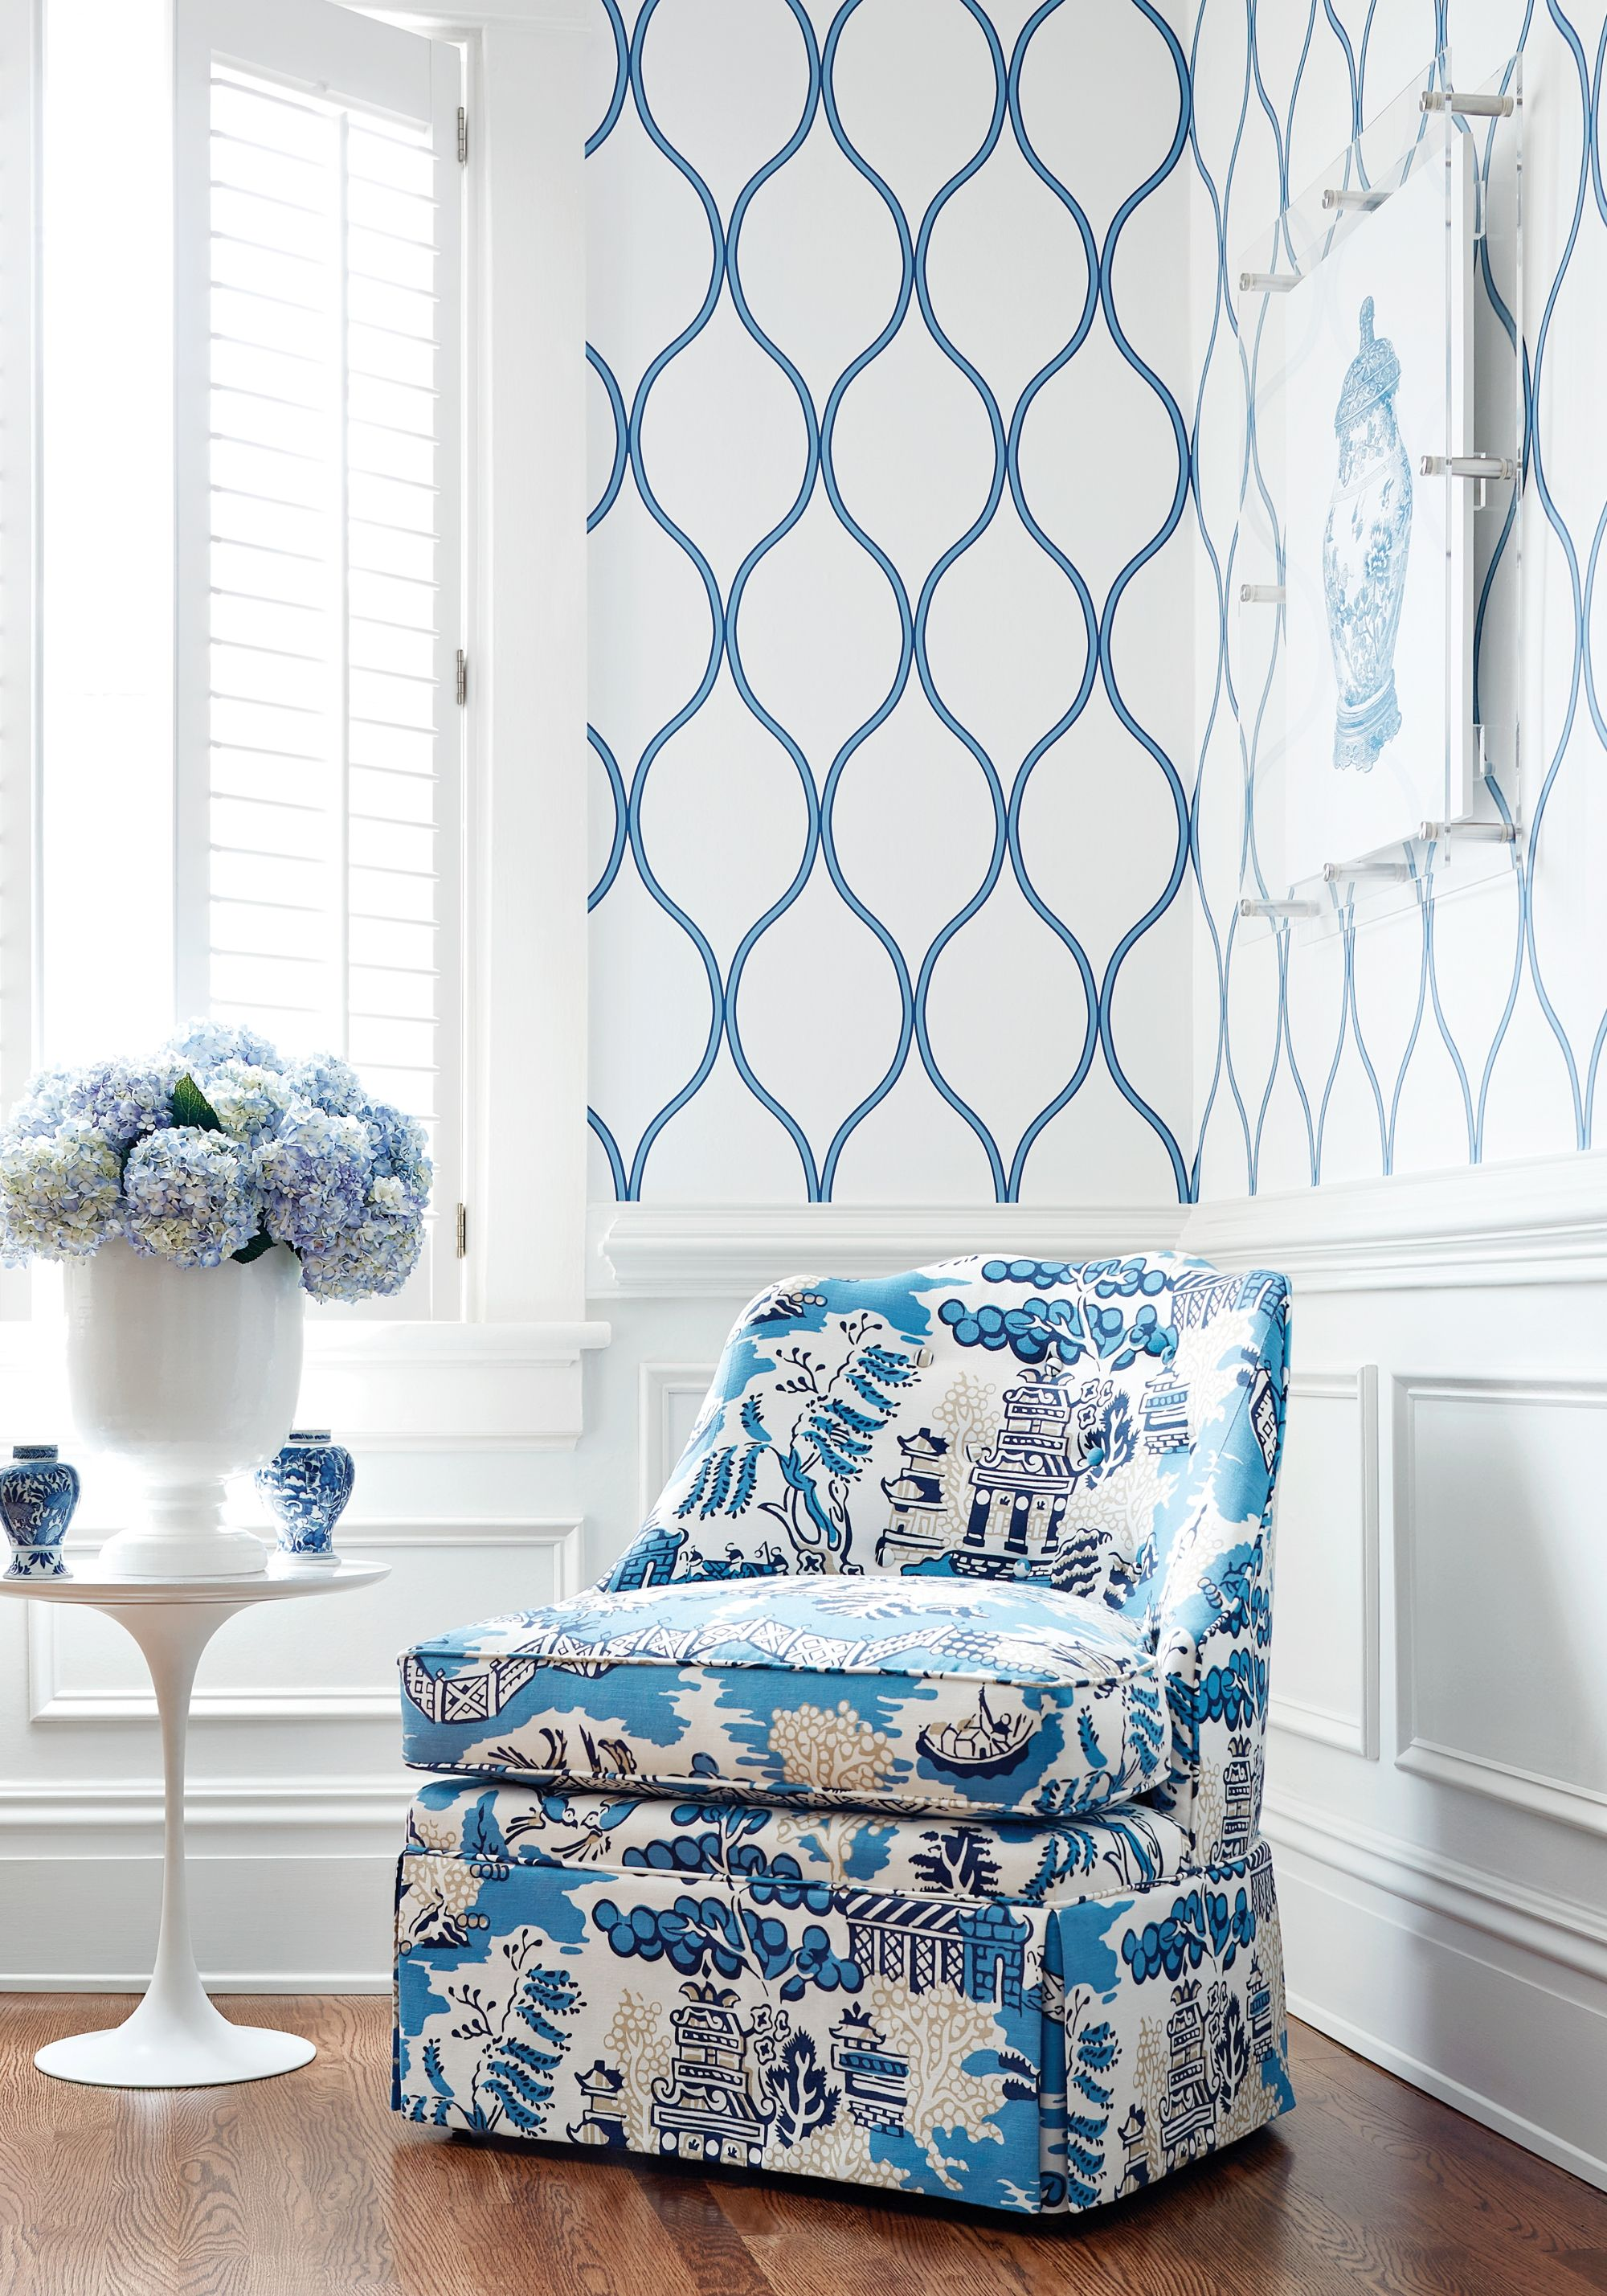 Brentwood Chair with Skirt from Thibaut Fine Furniture in